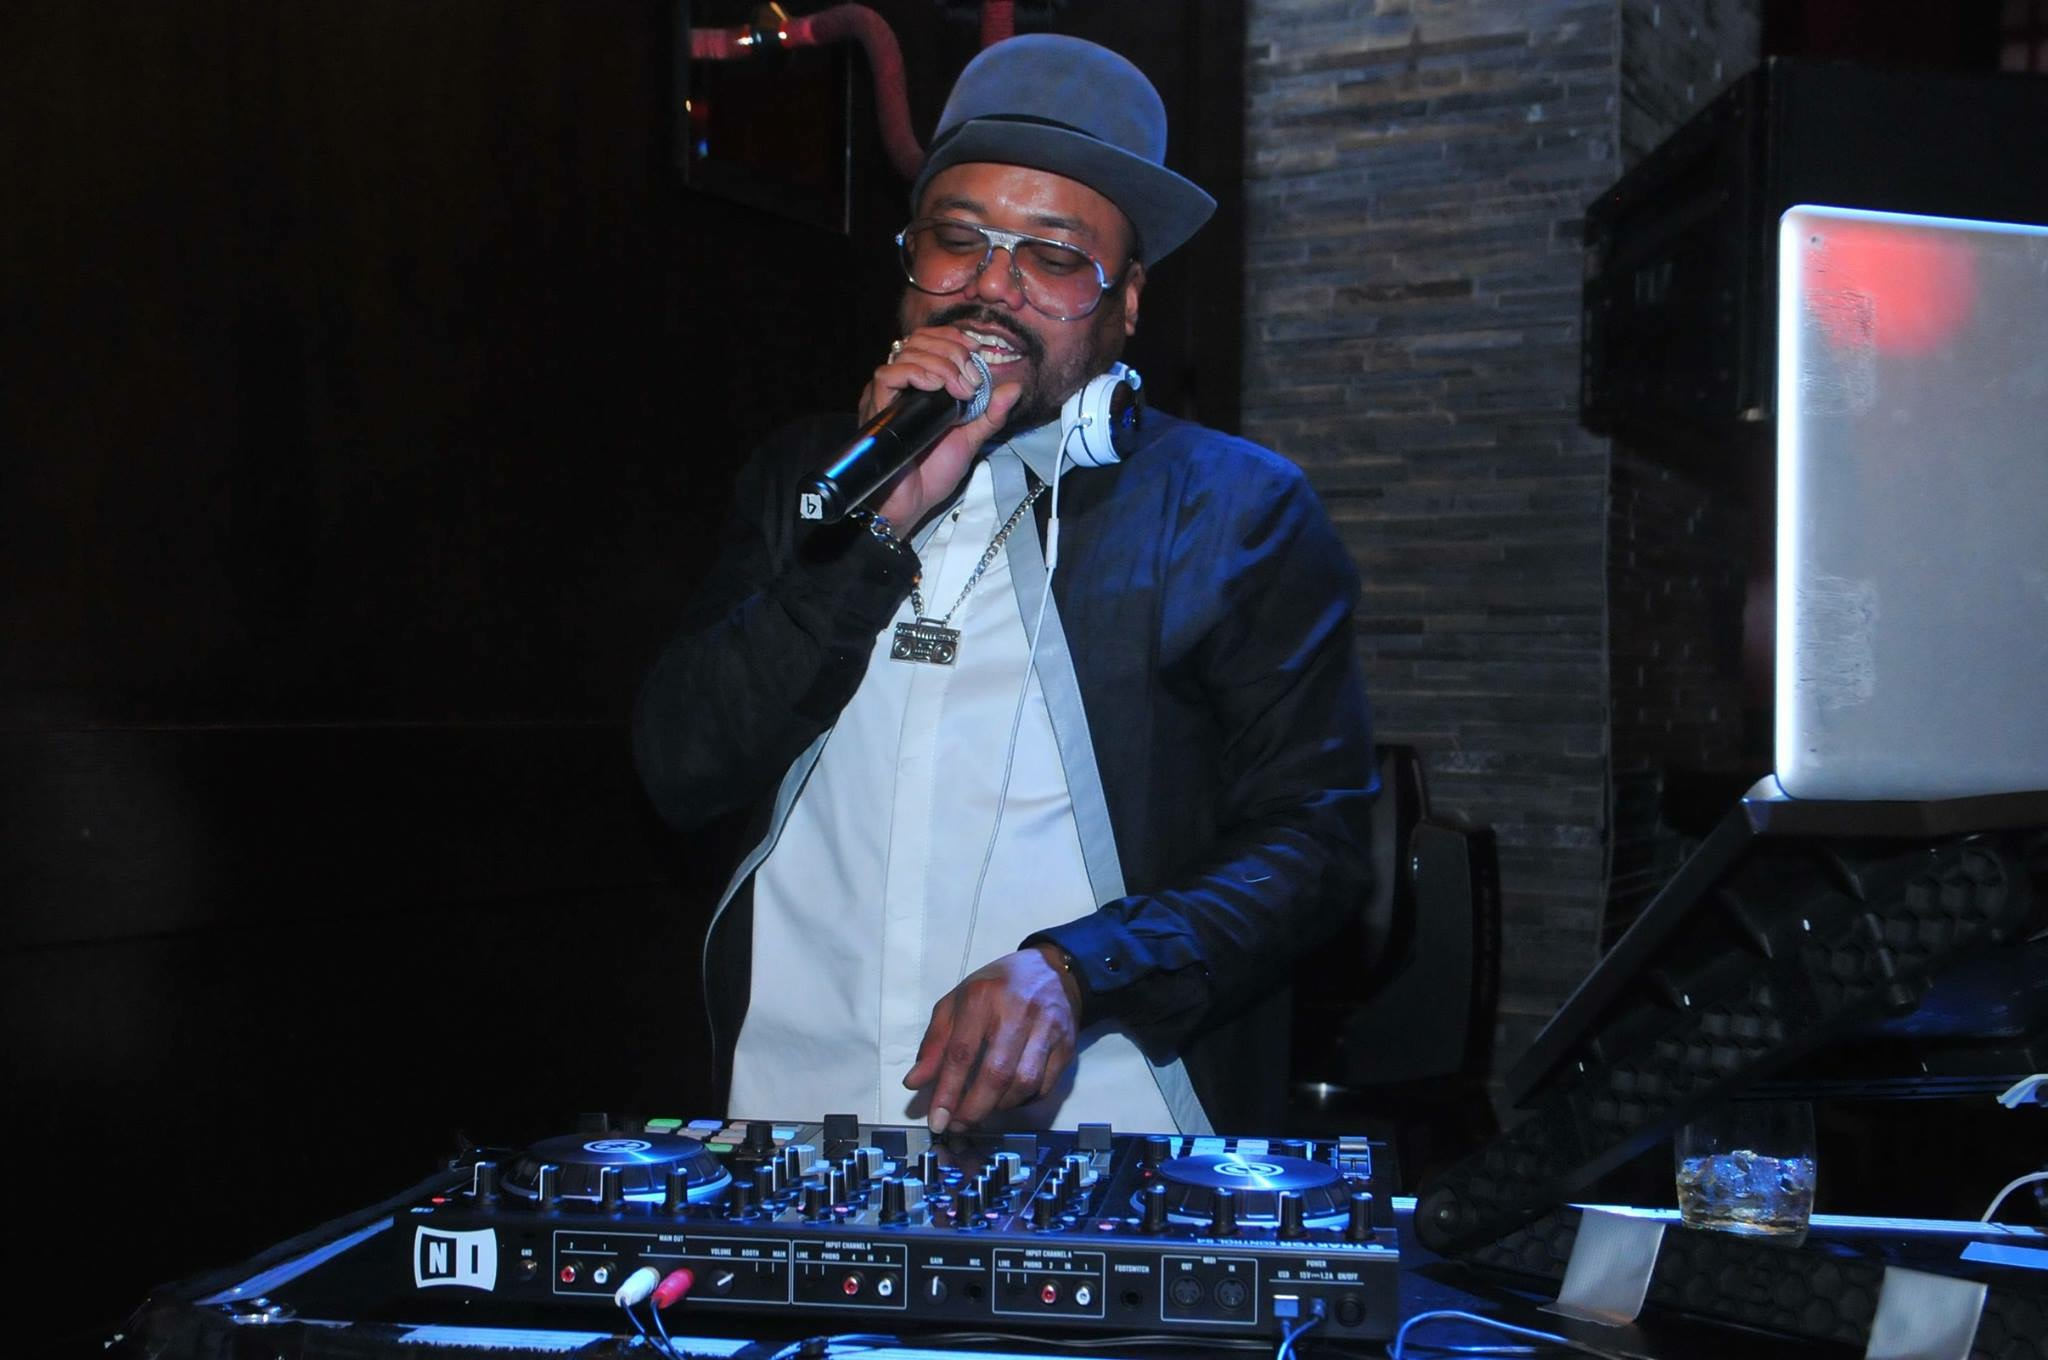 Special performance of the night, The Black Eyed Peas' Apl De Ap